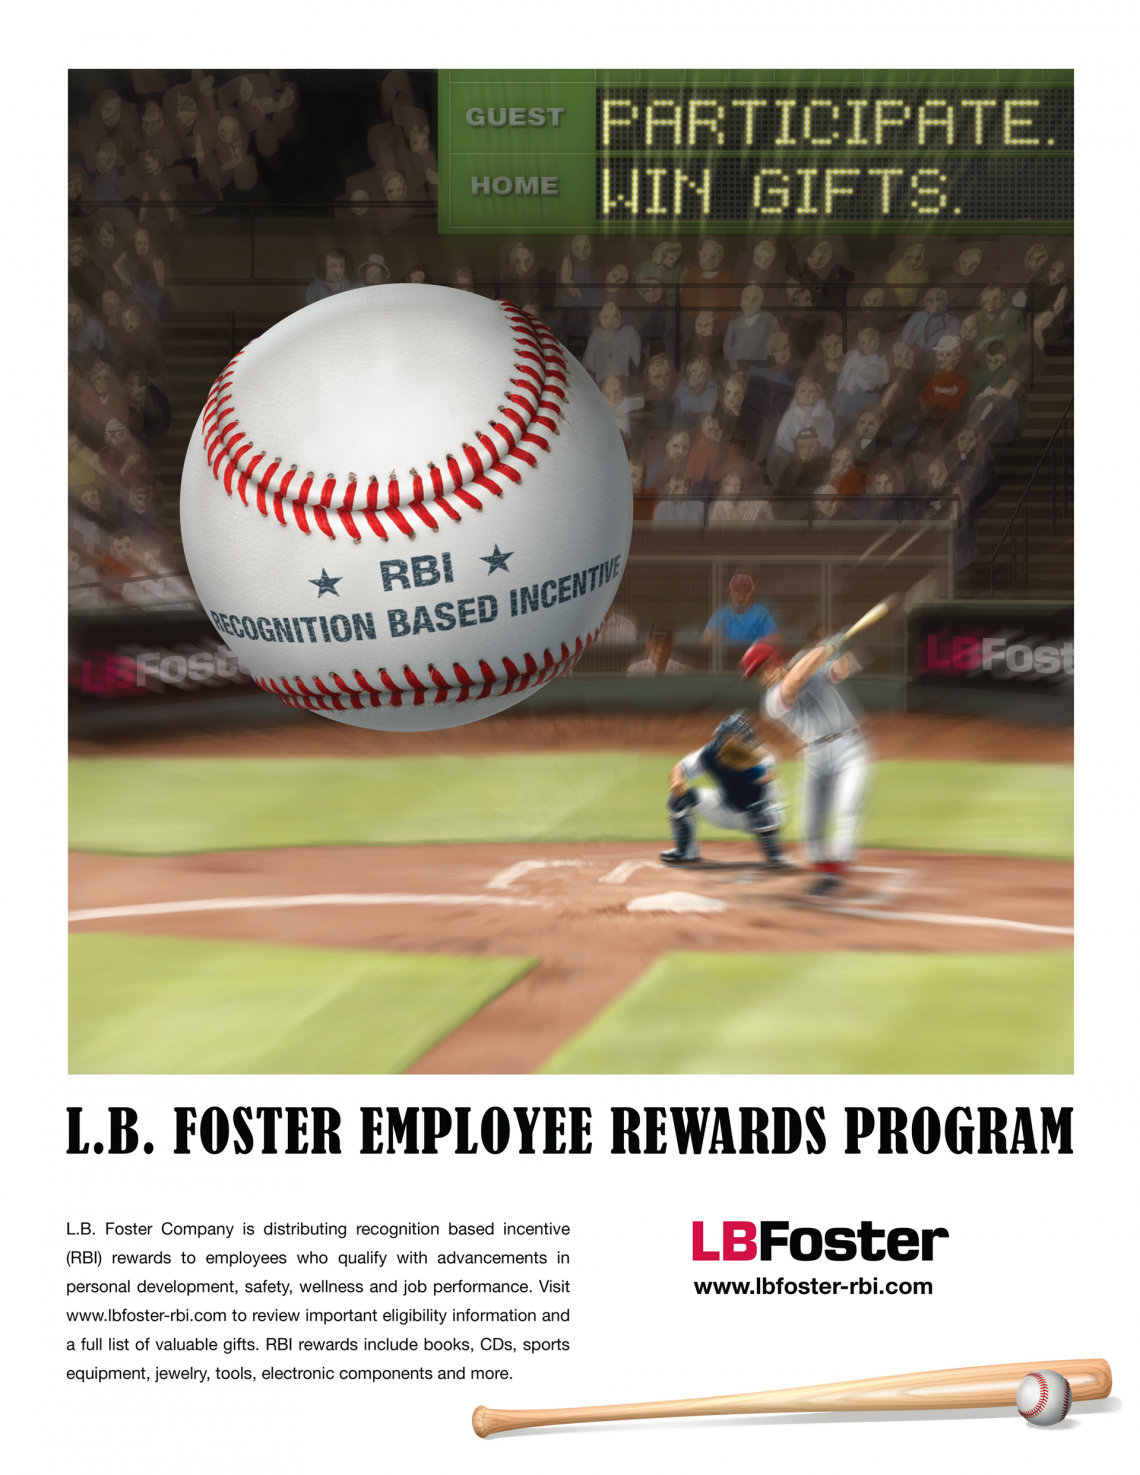 Corporate Employee Recognition Program Poster